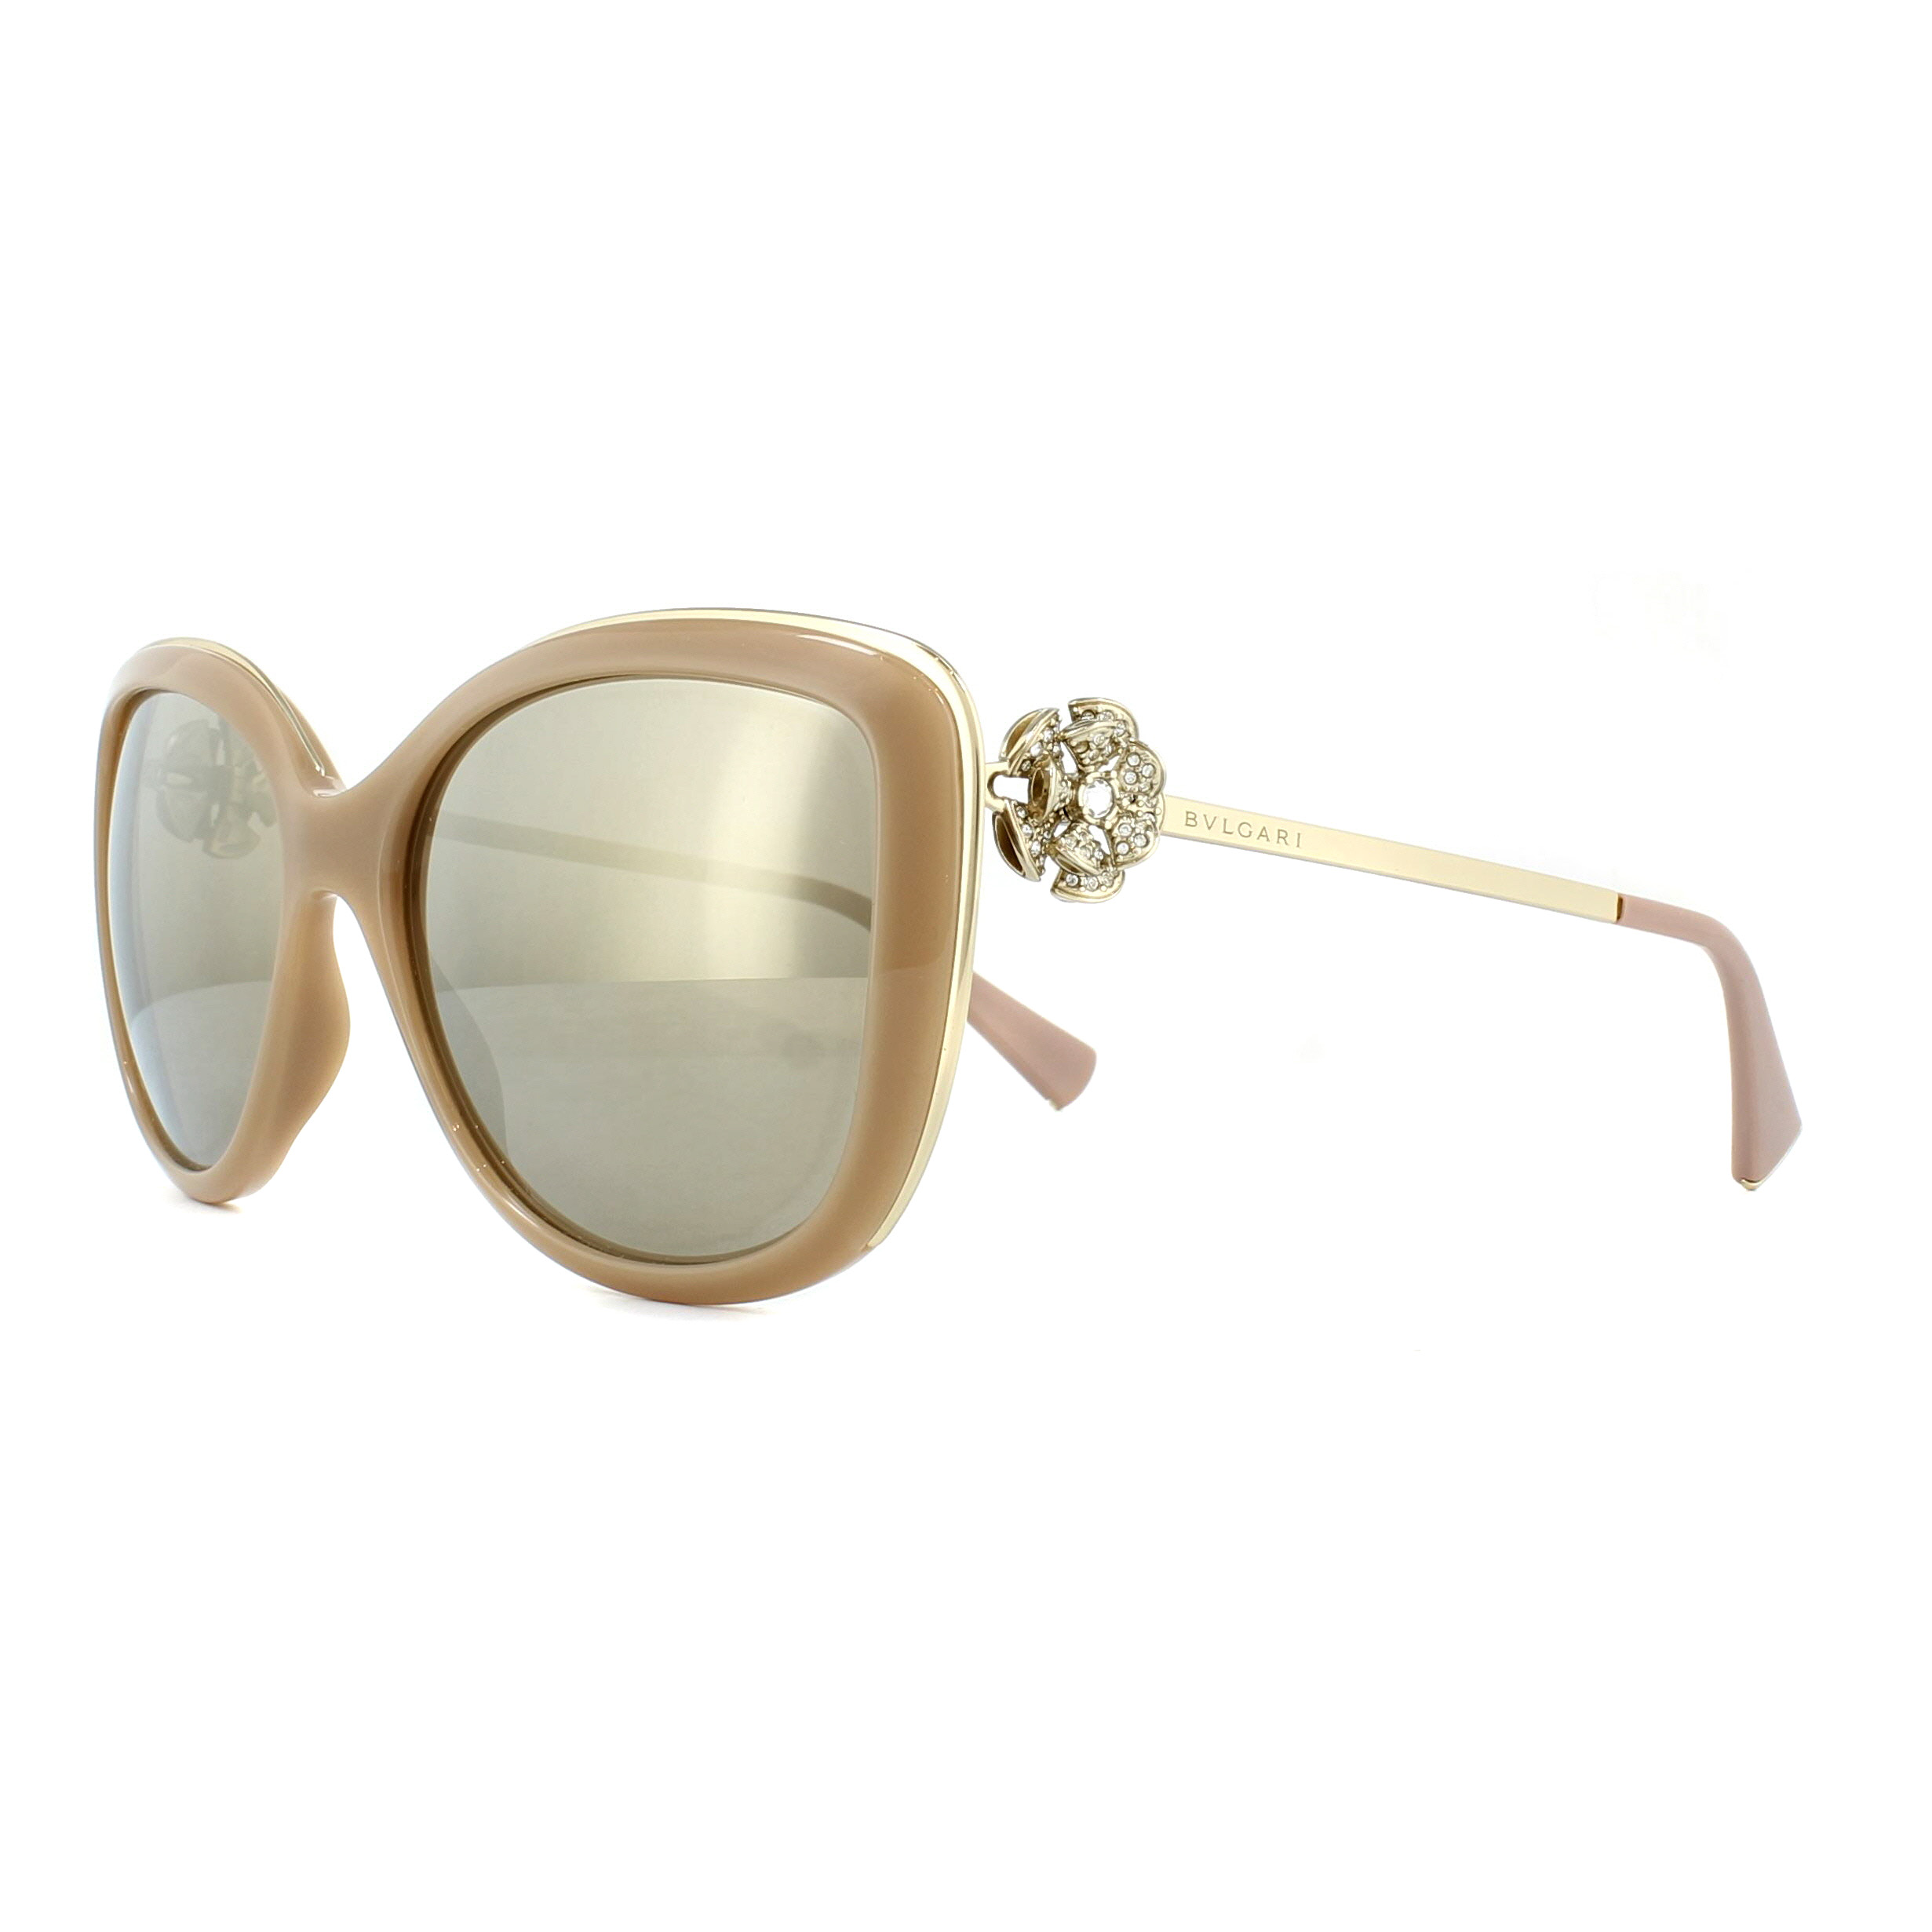 9e52b96aabf409 Bvlgari Sunglasses 6094B 278 5A Gold and Beige Light Brown Gold ...